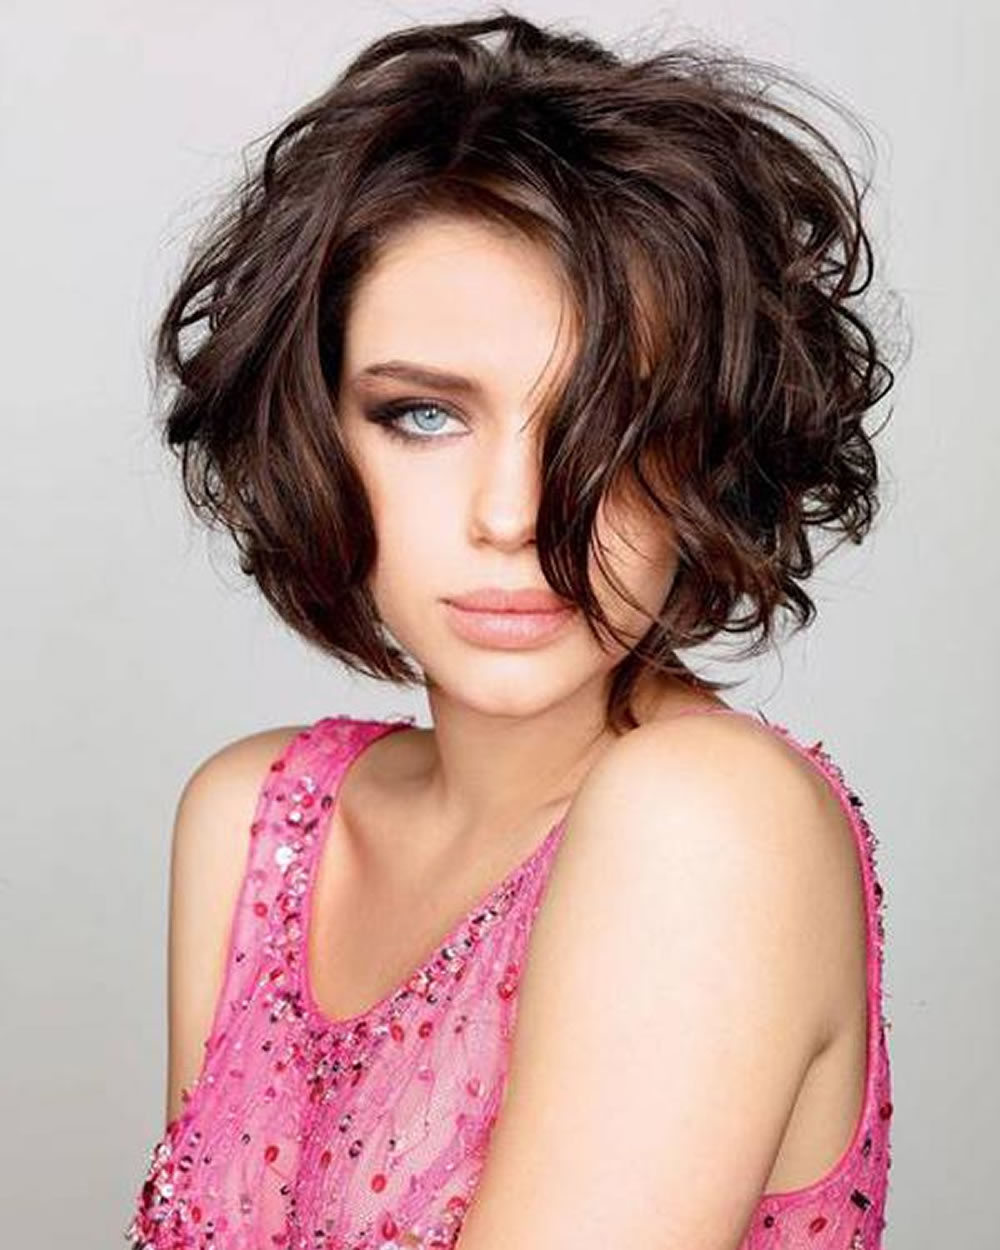 Short Hairstyles For Fine Curly Hair | Hair And Hairstyles With Regard To Short Hairstyles For Thin Curly Hair (View 8 of 25)